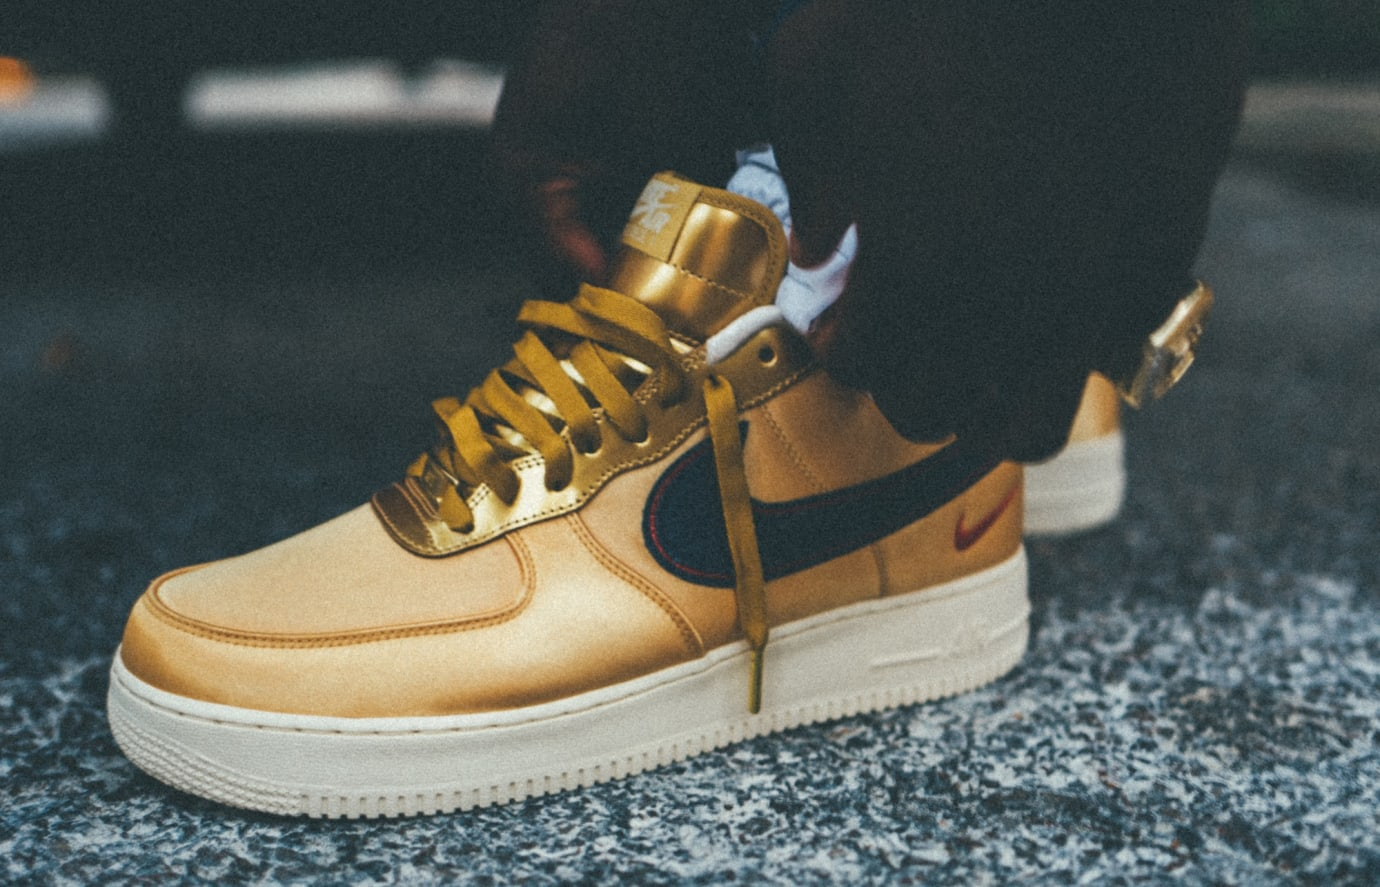 Nigel Sylvester x Nike Air Force 1 iD 'Gold' (On-Foot Detail)